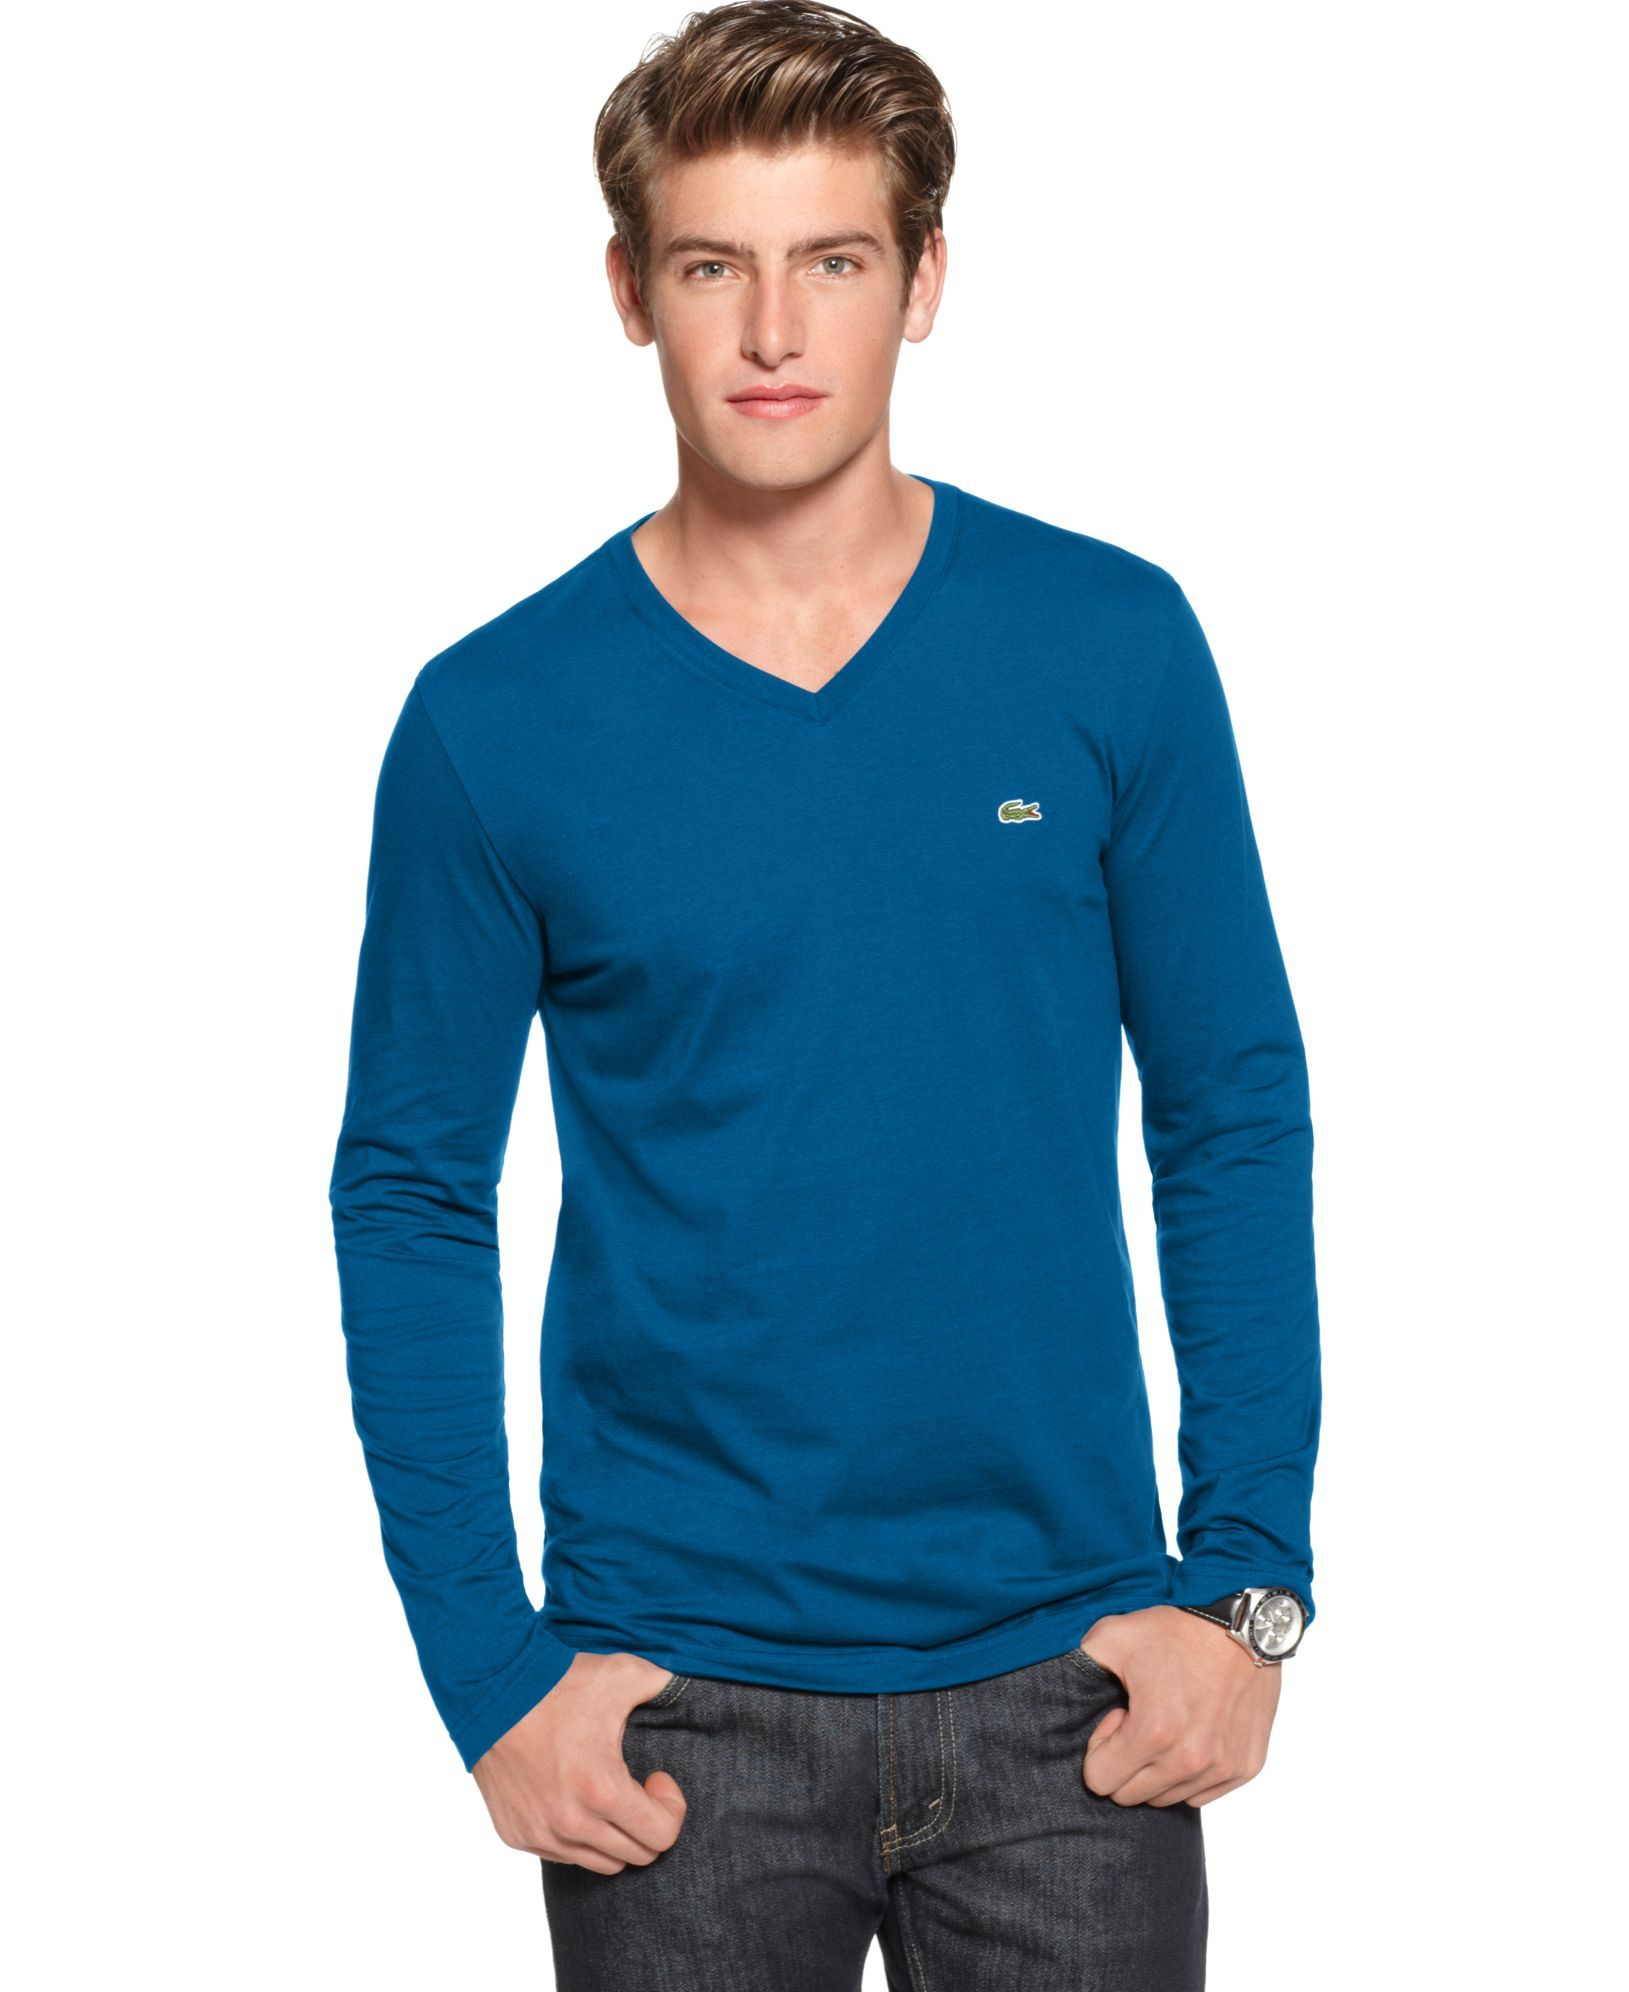 cad09cccb6 Lacoste T Shirt, Core Long Sleeve Jersey V Neck | Products | Lacoste ...